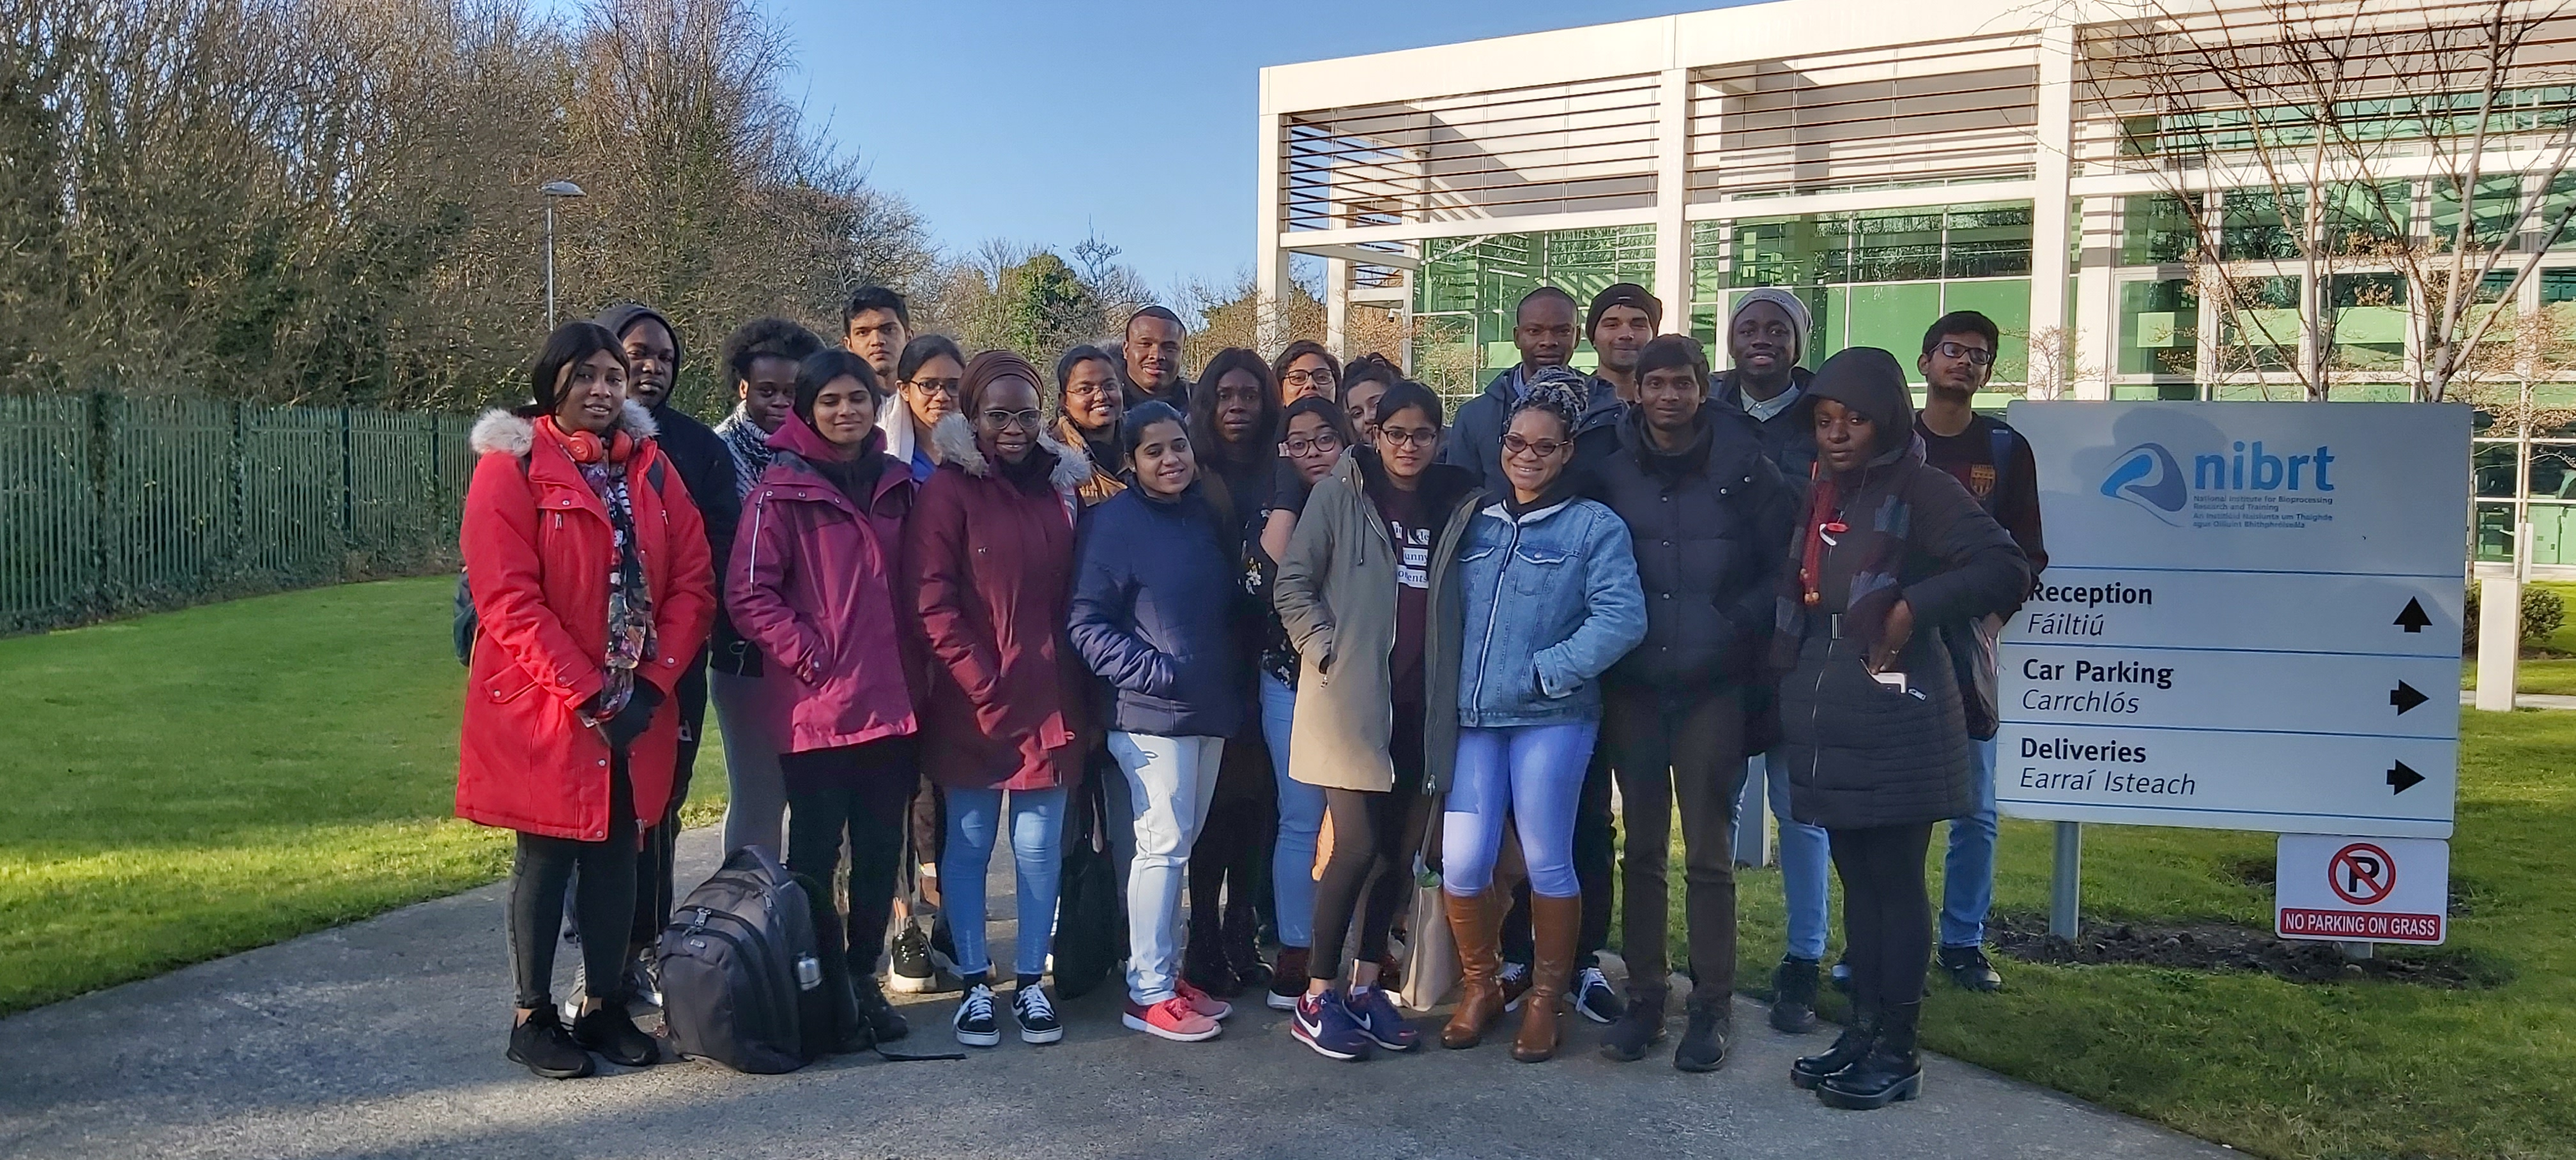 Visit of 2020 MSc in Biopharmaceutical Technology Class to National Bioprocessing Research and Training (NIBRT) at UCD